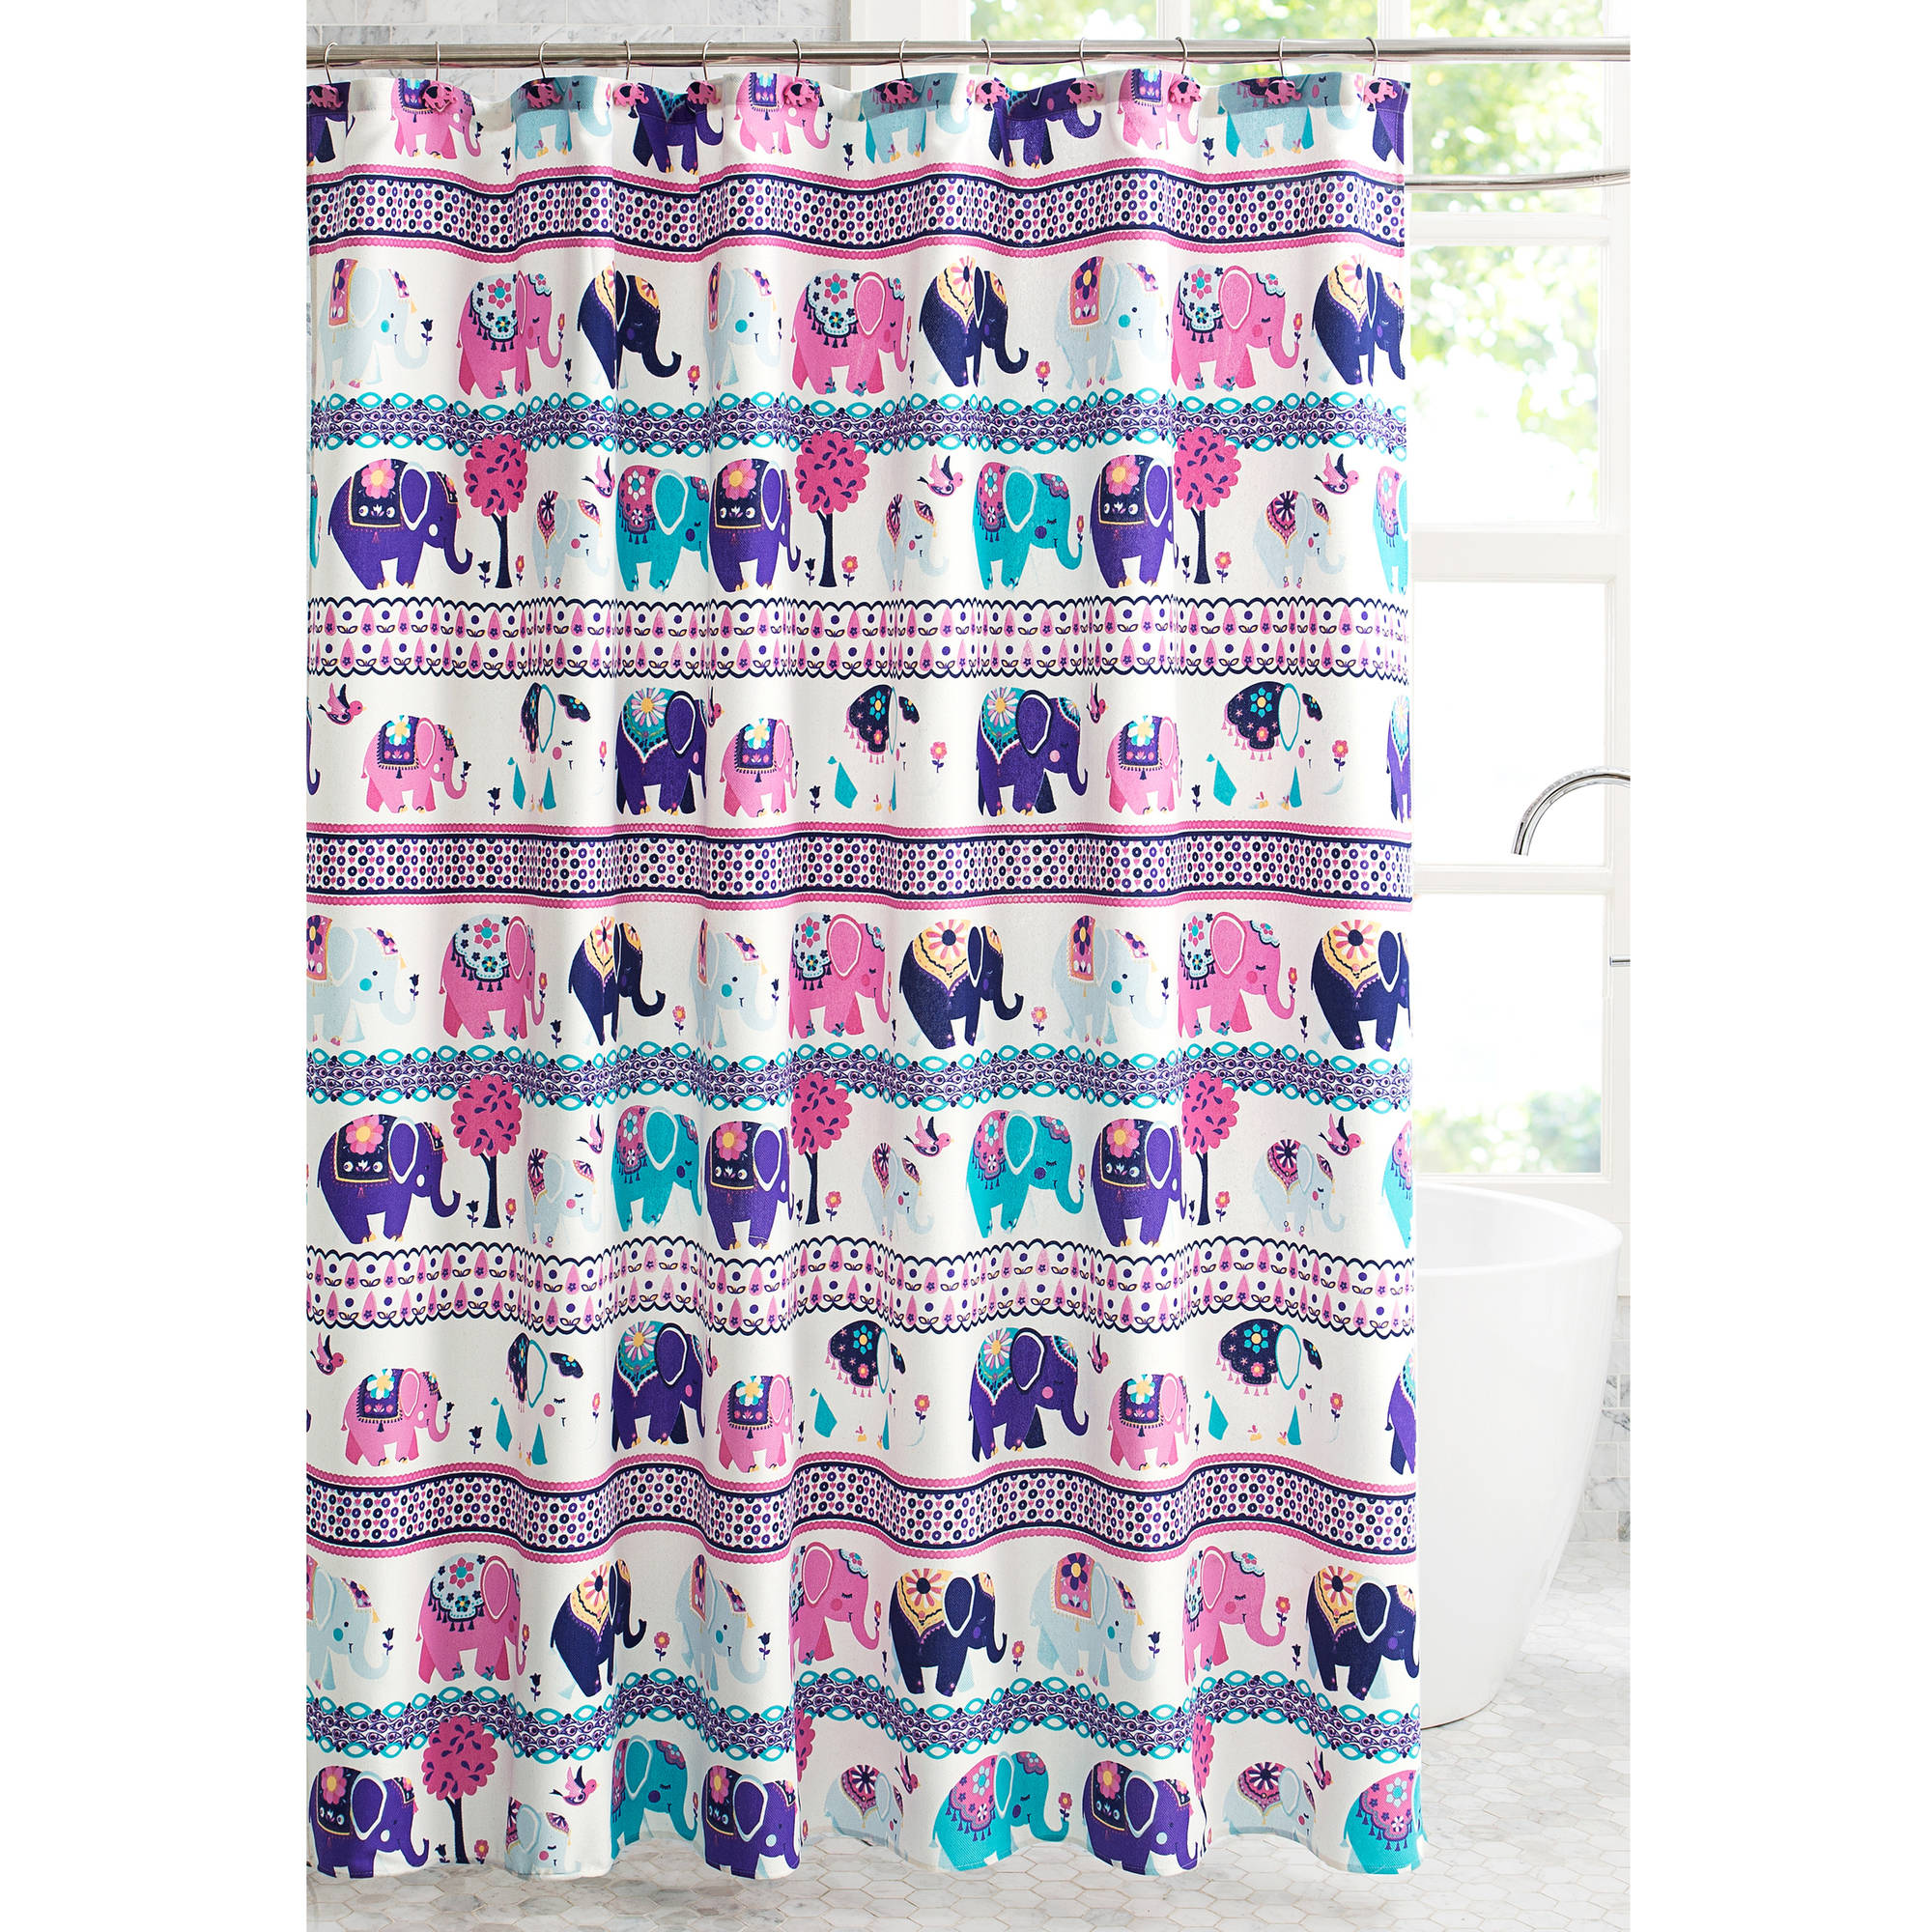 Better Homes and Gardens Elephants on Parade 13-Piece Shower Curtain Set